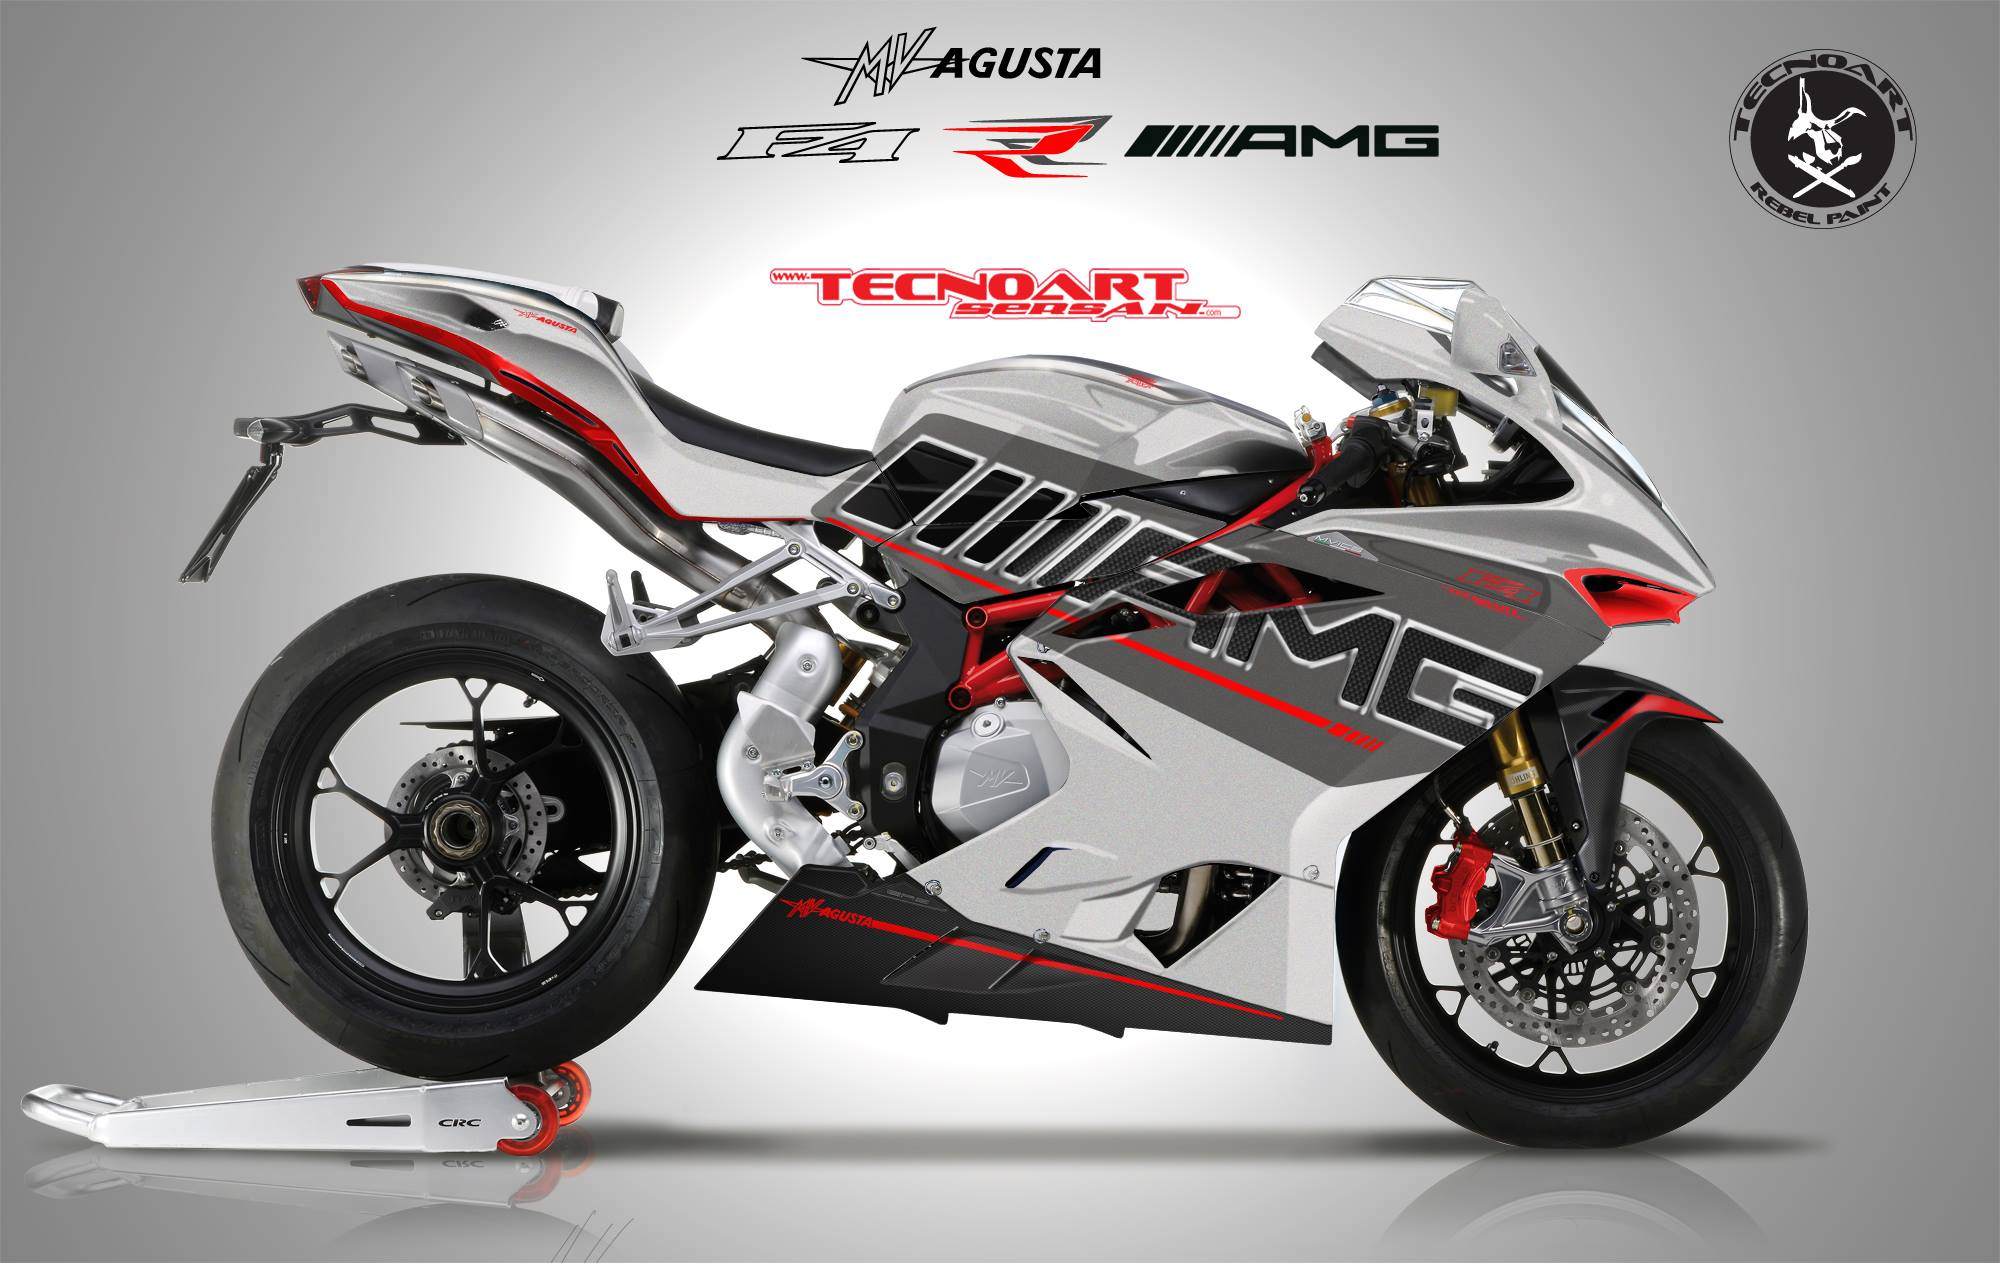 mv agusta f4 rr amg revealed by tecnoart sersan autoevolution. Black Bedroom Furniture Sets. Home Design Ideas